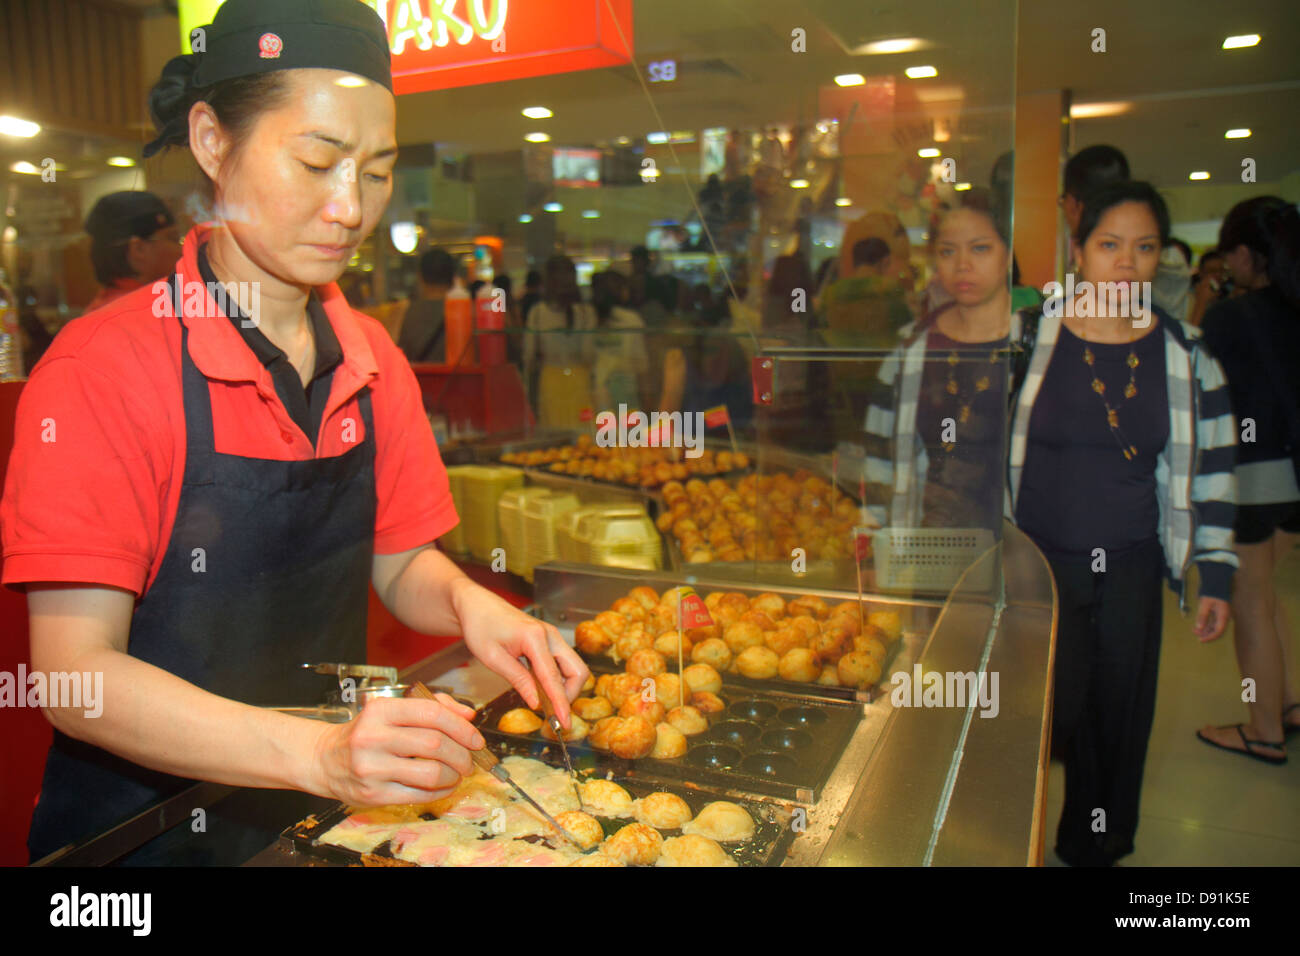 Singapore Orchard Road Plaza Singapura shopping mall complex food court Asian woman restaurant employee cook job - Stock Image